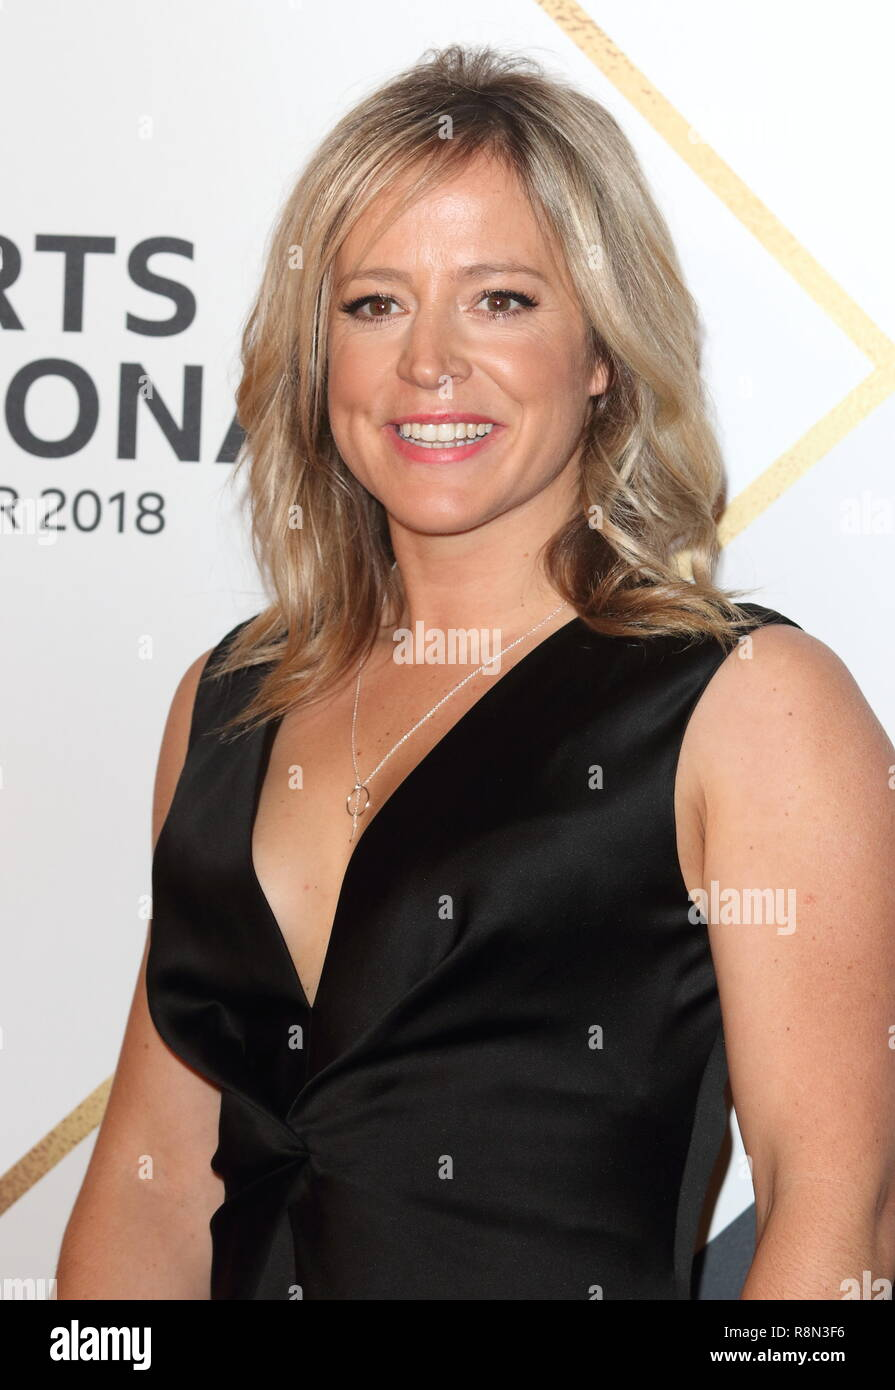 Jenny Jones on the red carpet at the BBC Sports Personality Of The Year 2018 at the Resorts World Arena. - Stock Image